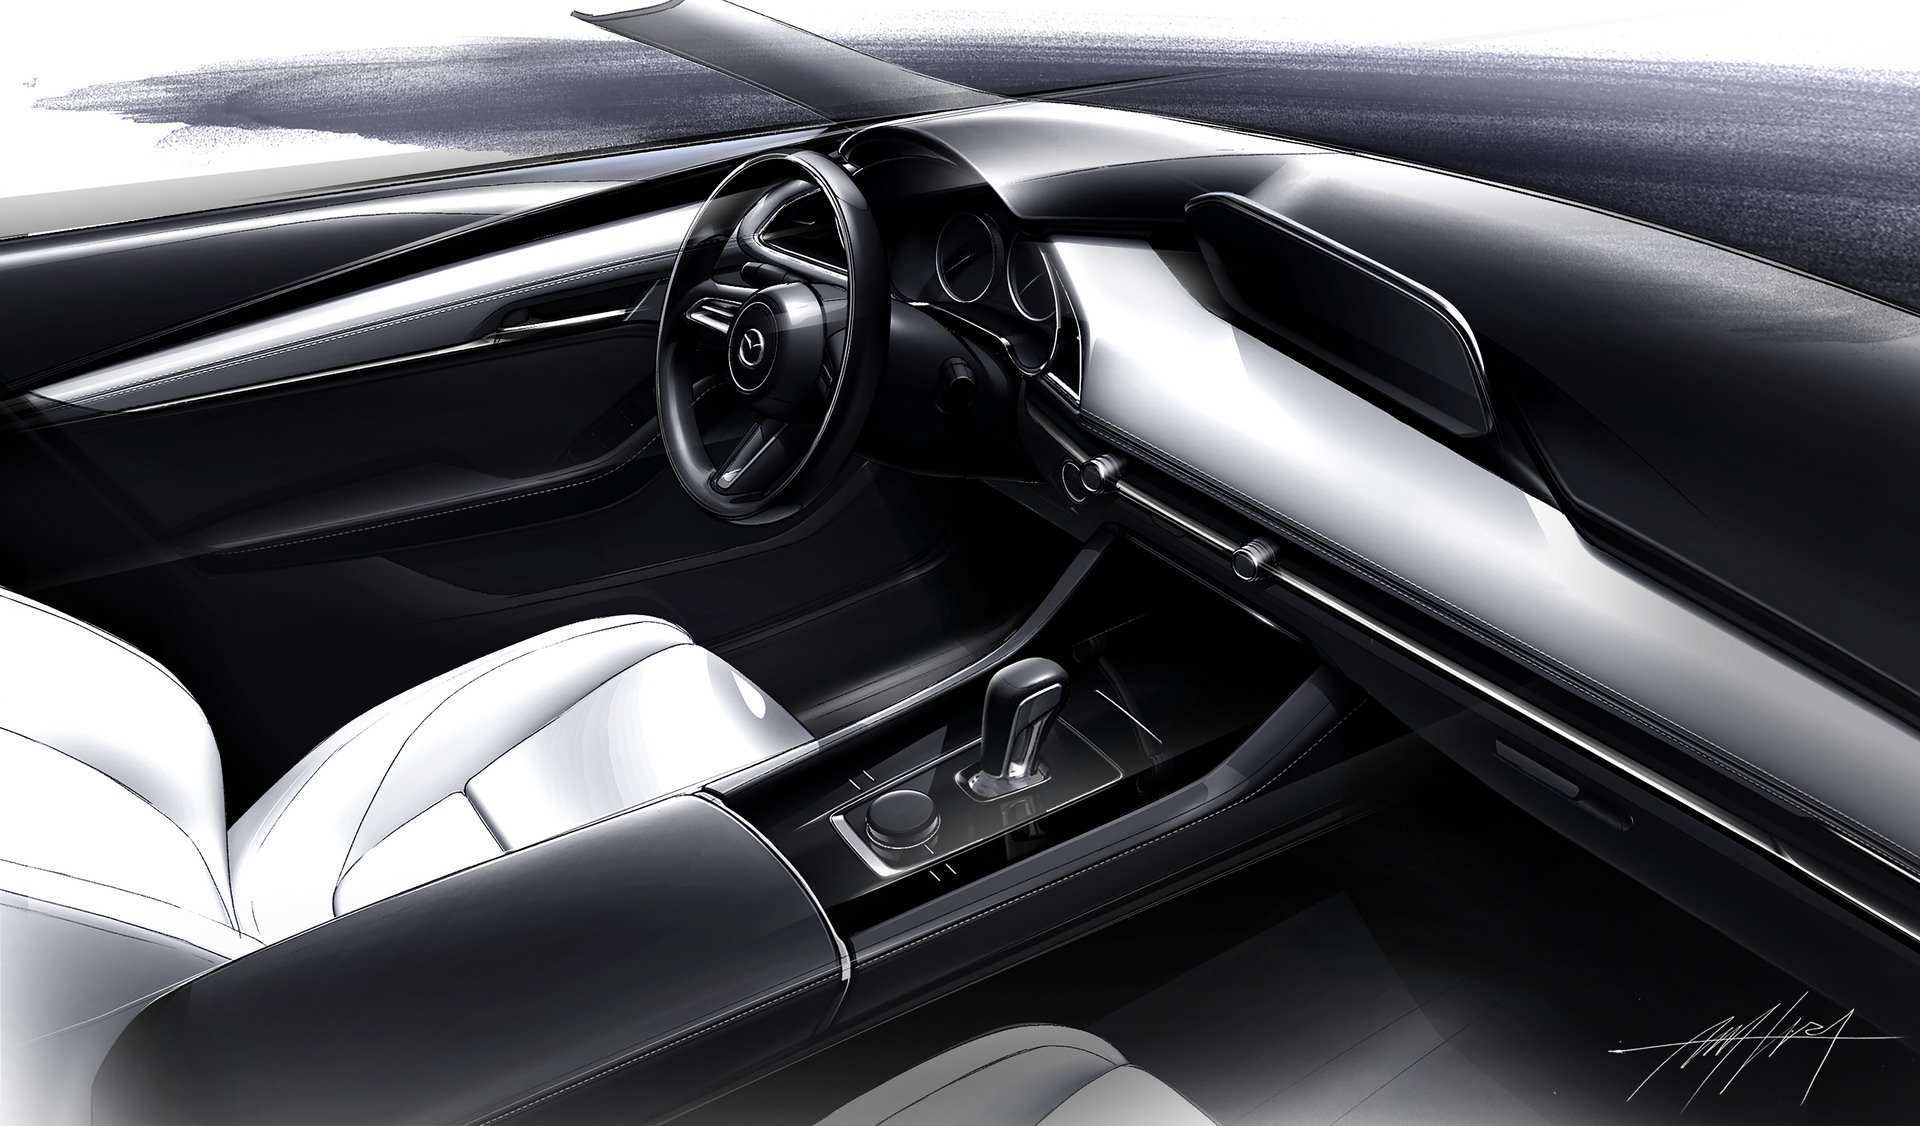 73 New Mazda 3 2019 Interior New Concept with Mazda 3 2019 Interior